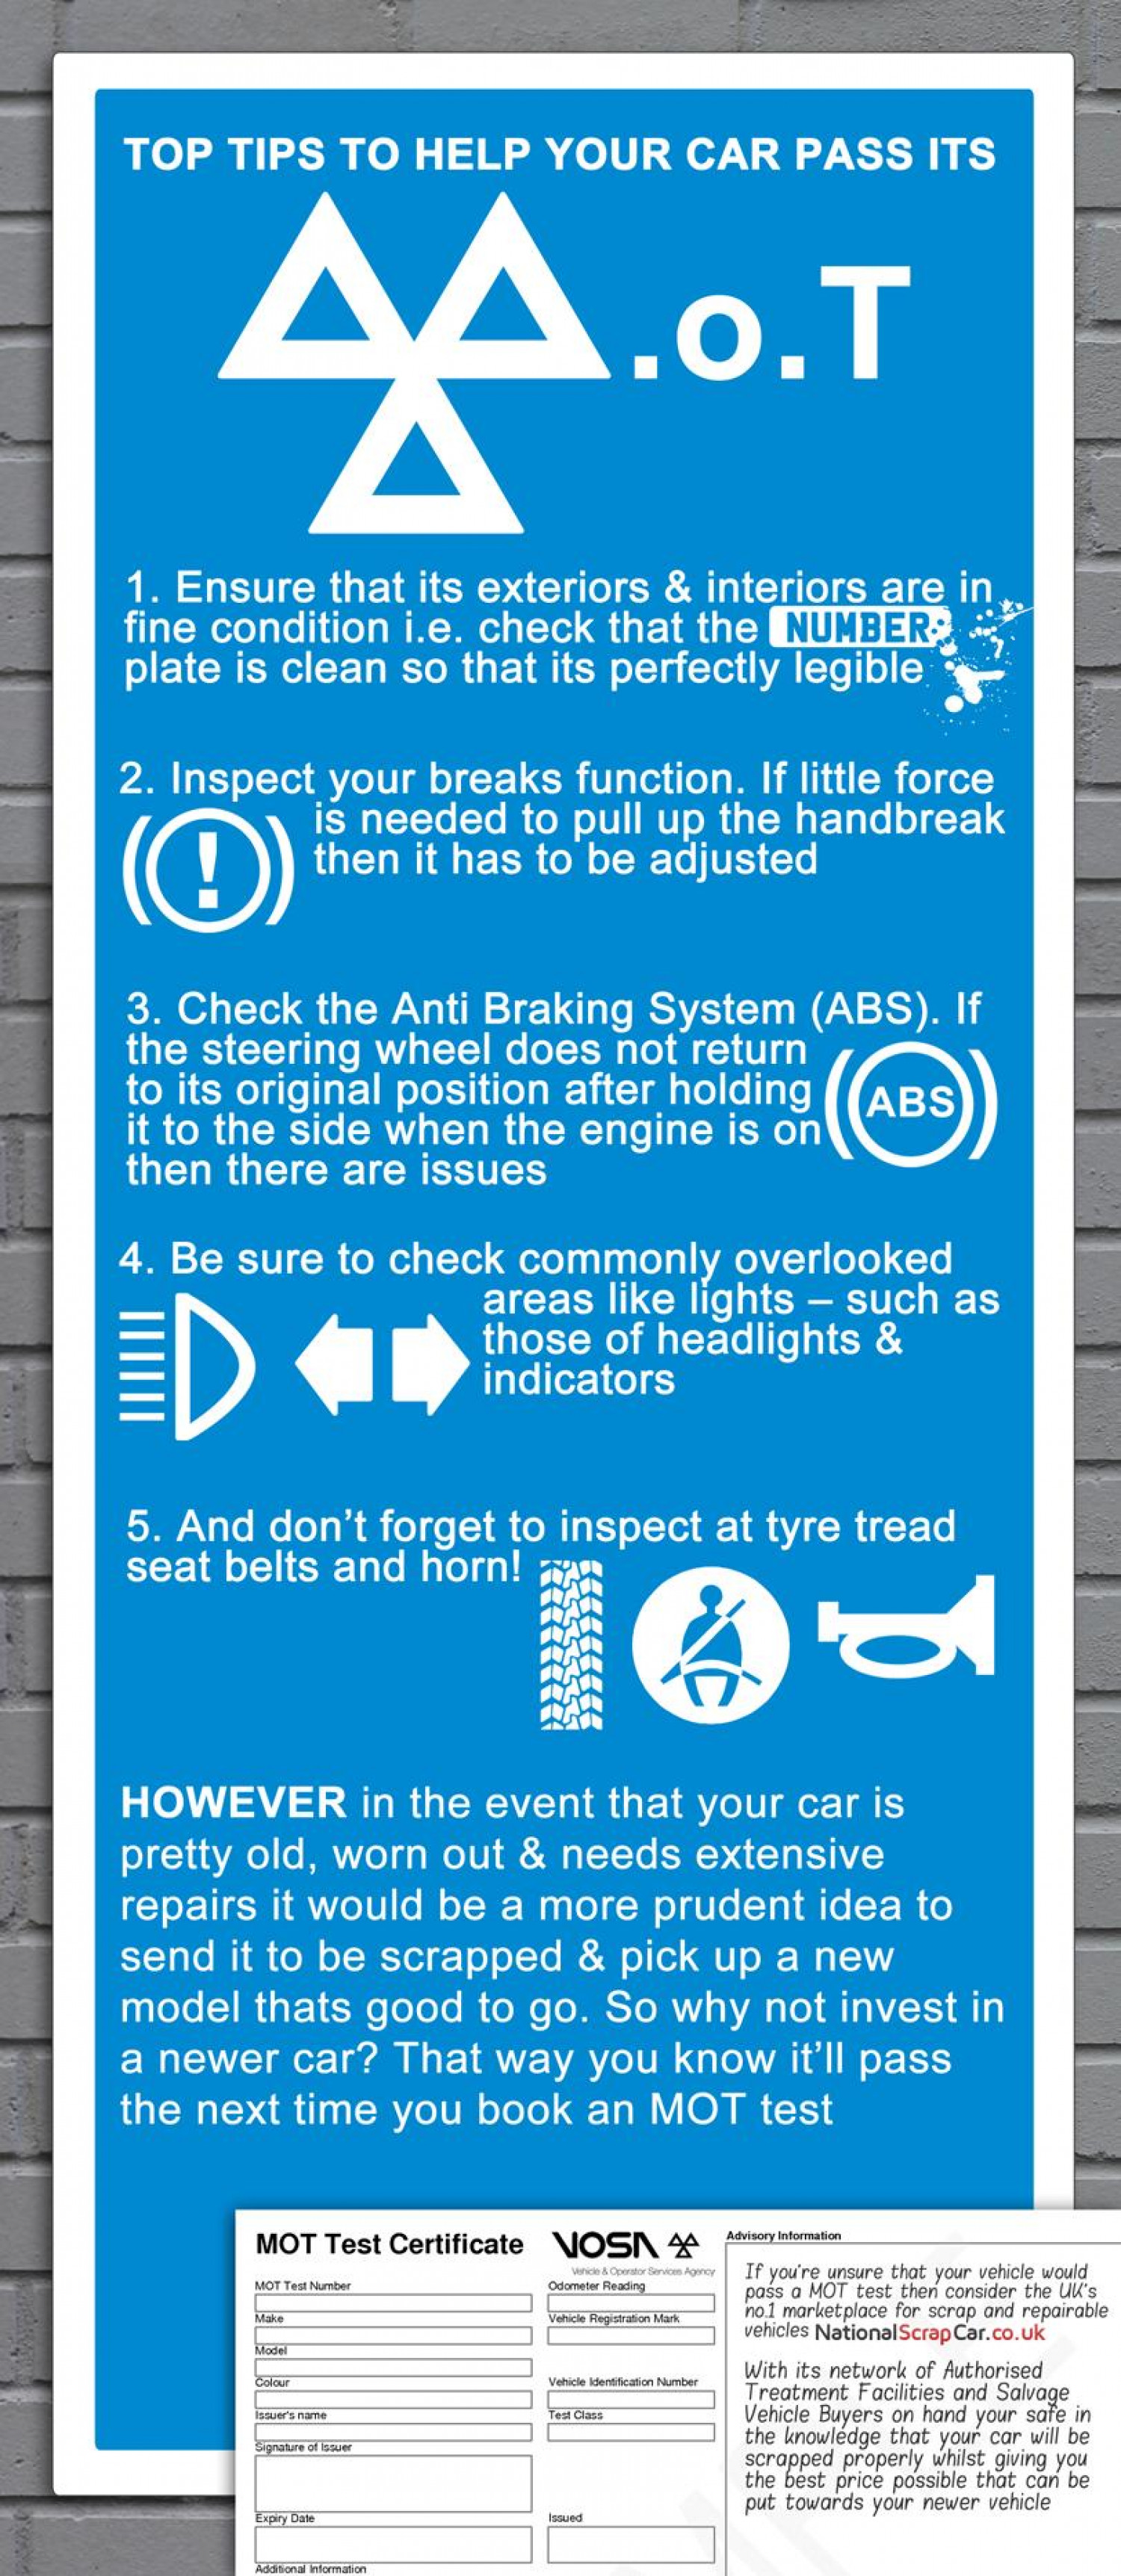 Top Tips to Help Your Car Pass its MOT Infographic